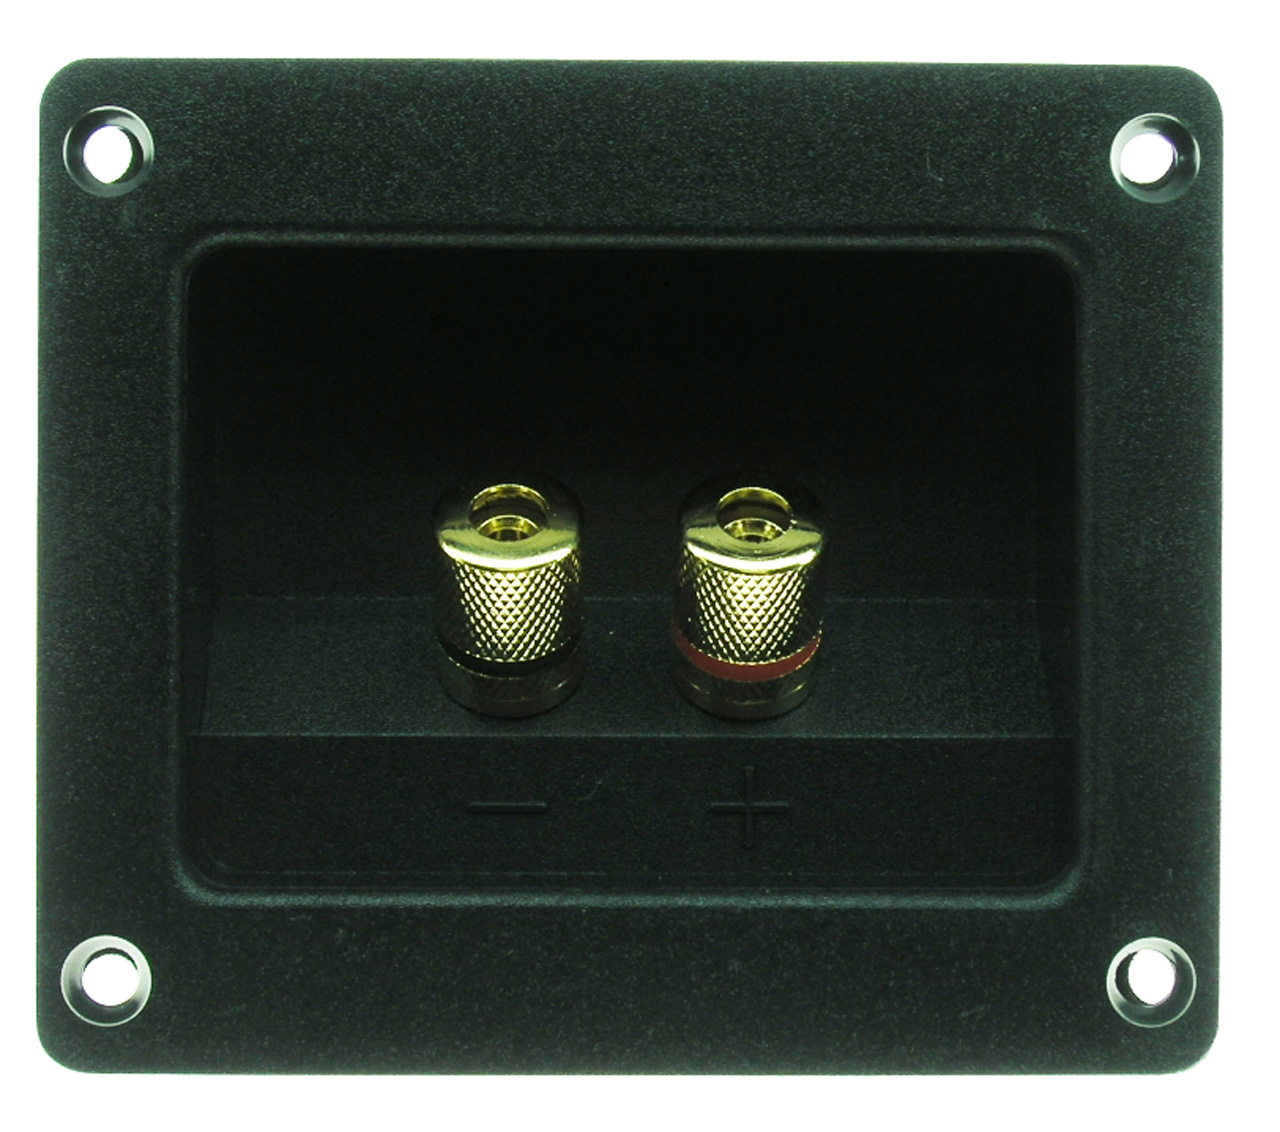 Replacement speaker grill